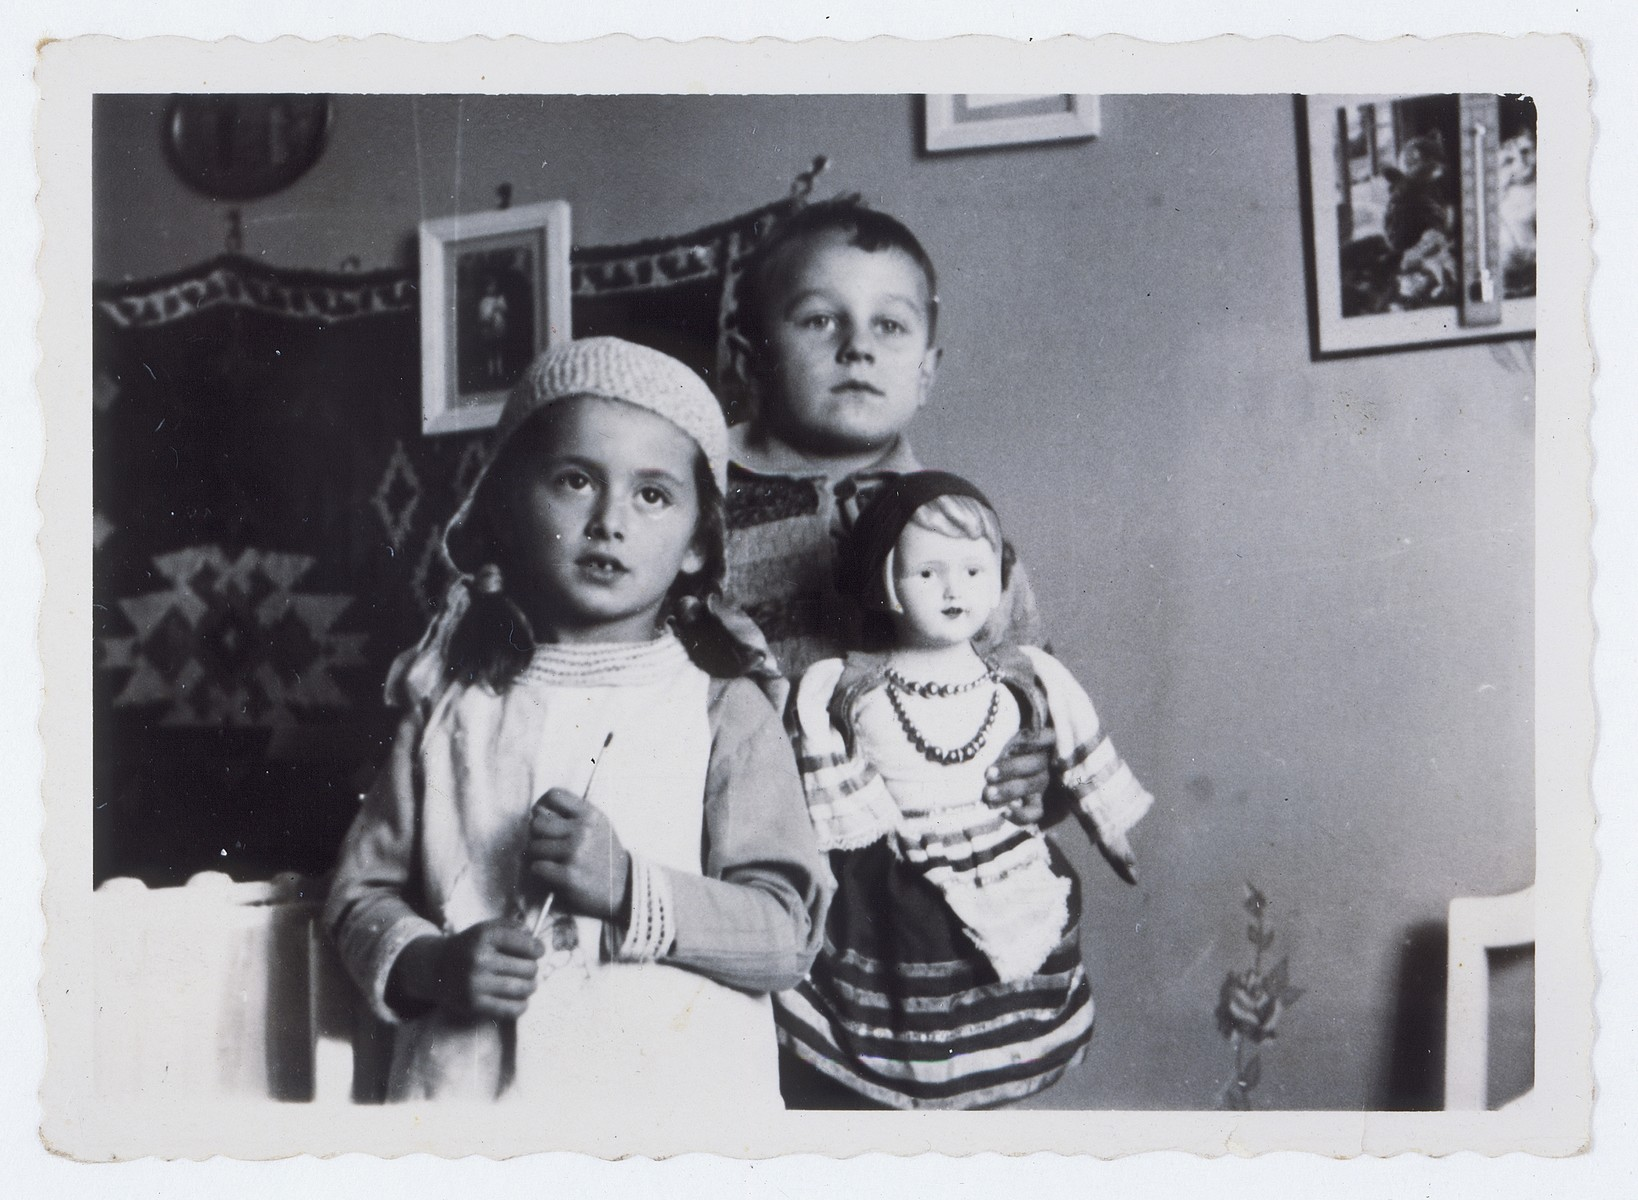 Two young children play with a large doll.  Pictured are Lida Kleinman and Jezek Pepelowier.